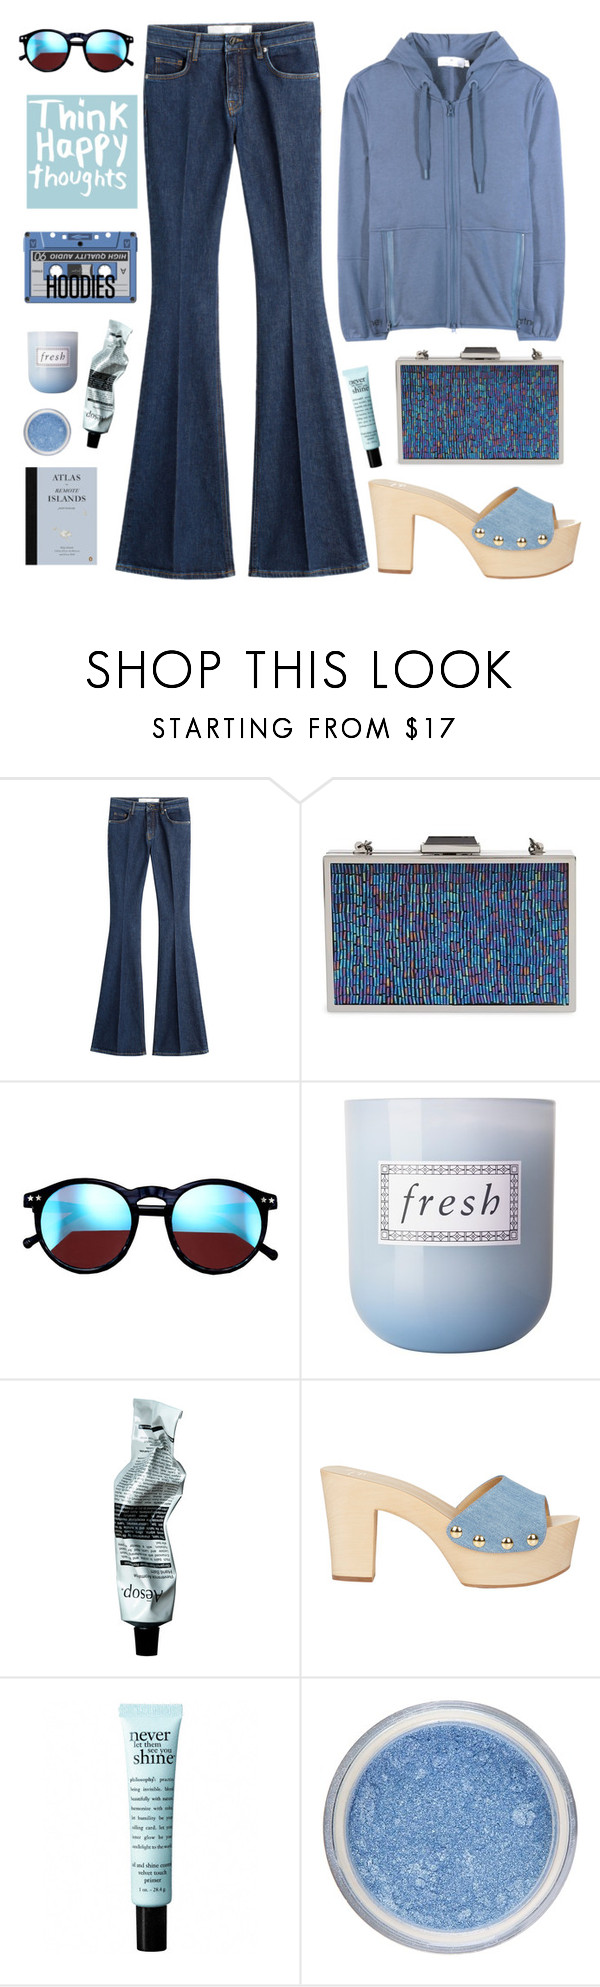 """""""The Flares and The Hoodies"""" by karineminzonwilson ❤ liked on Polyvore featuring dVb Victoria Beckham, Jessica McClintock, Wildfox, Fresh, Aesop, Giuseppe Zanotti, philosophy, adidas, women's clothing and women's fashion"""